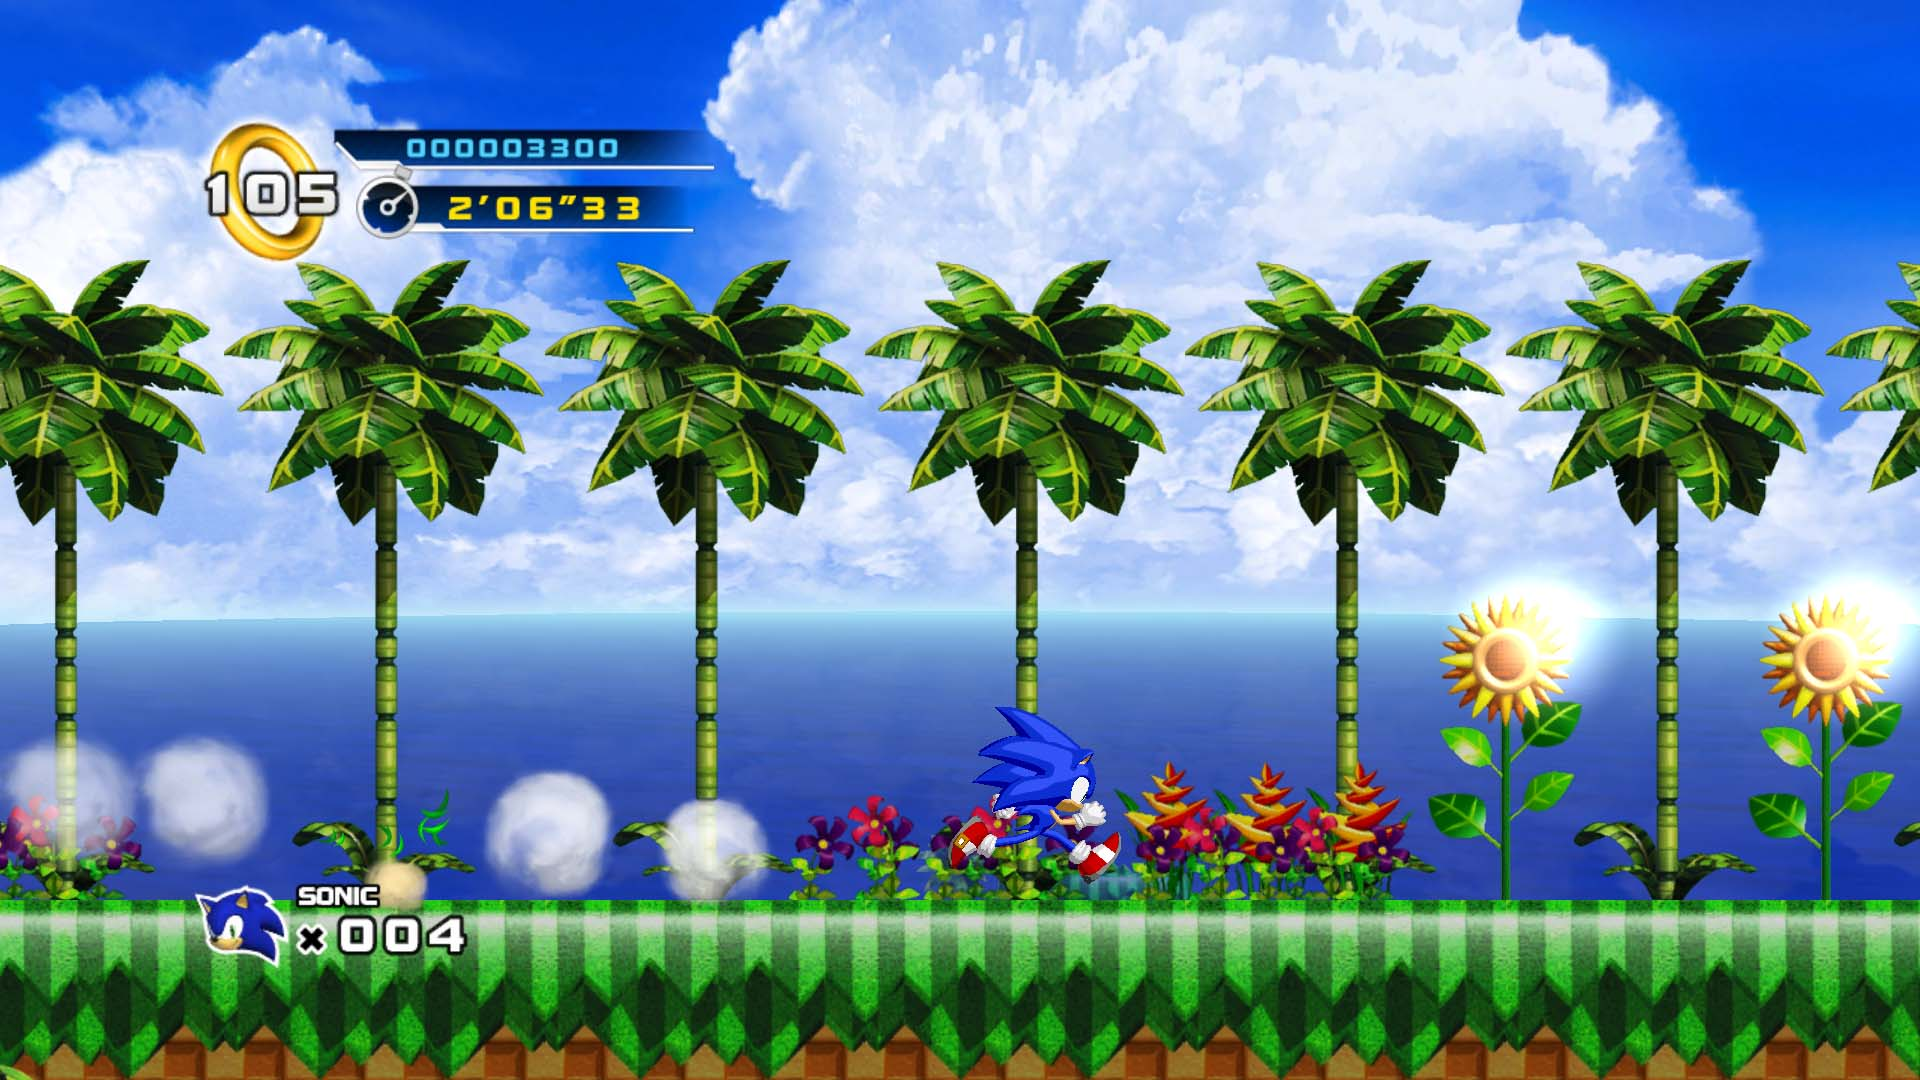 Sonic The Hedgehog 4 Episode I Sega